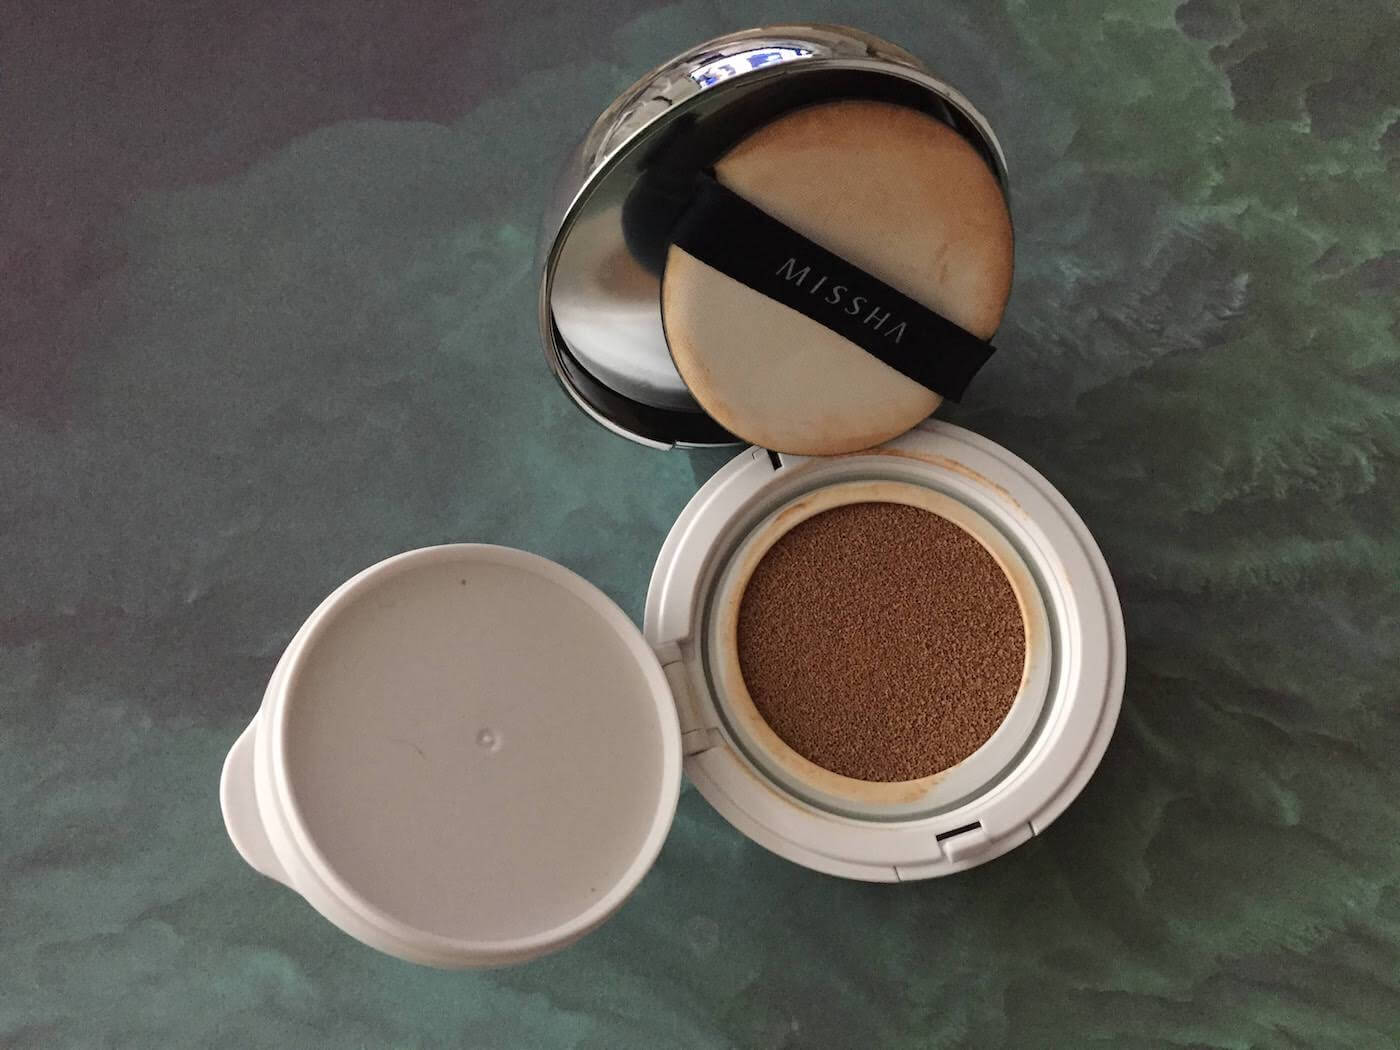 Missha Magic Cushion SPF 50 review (No. 27) inside package